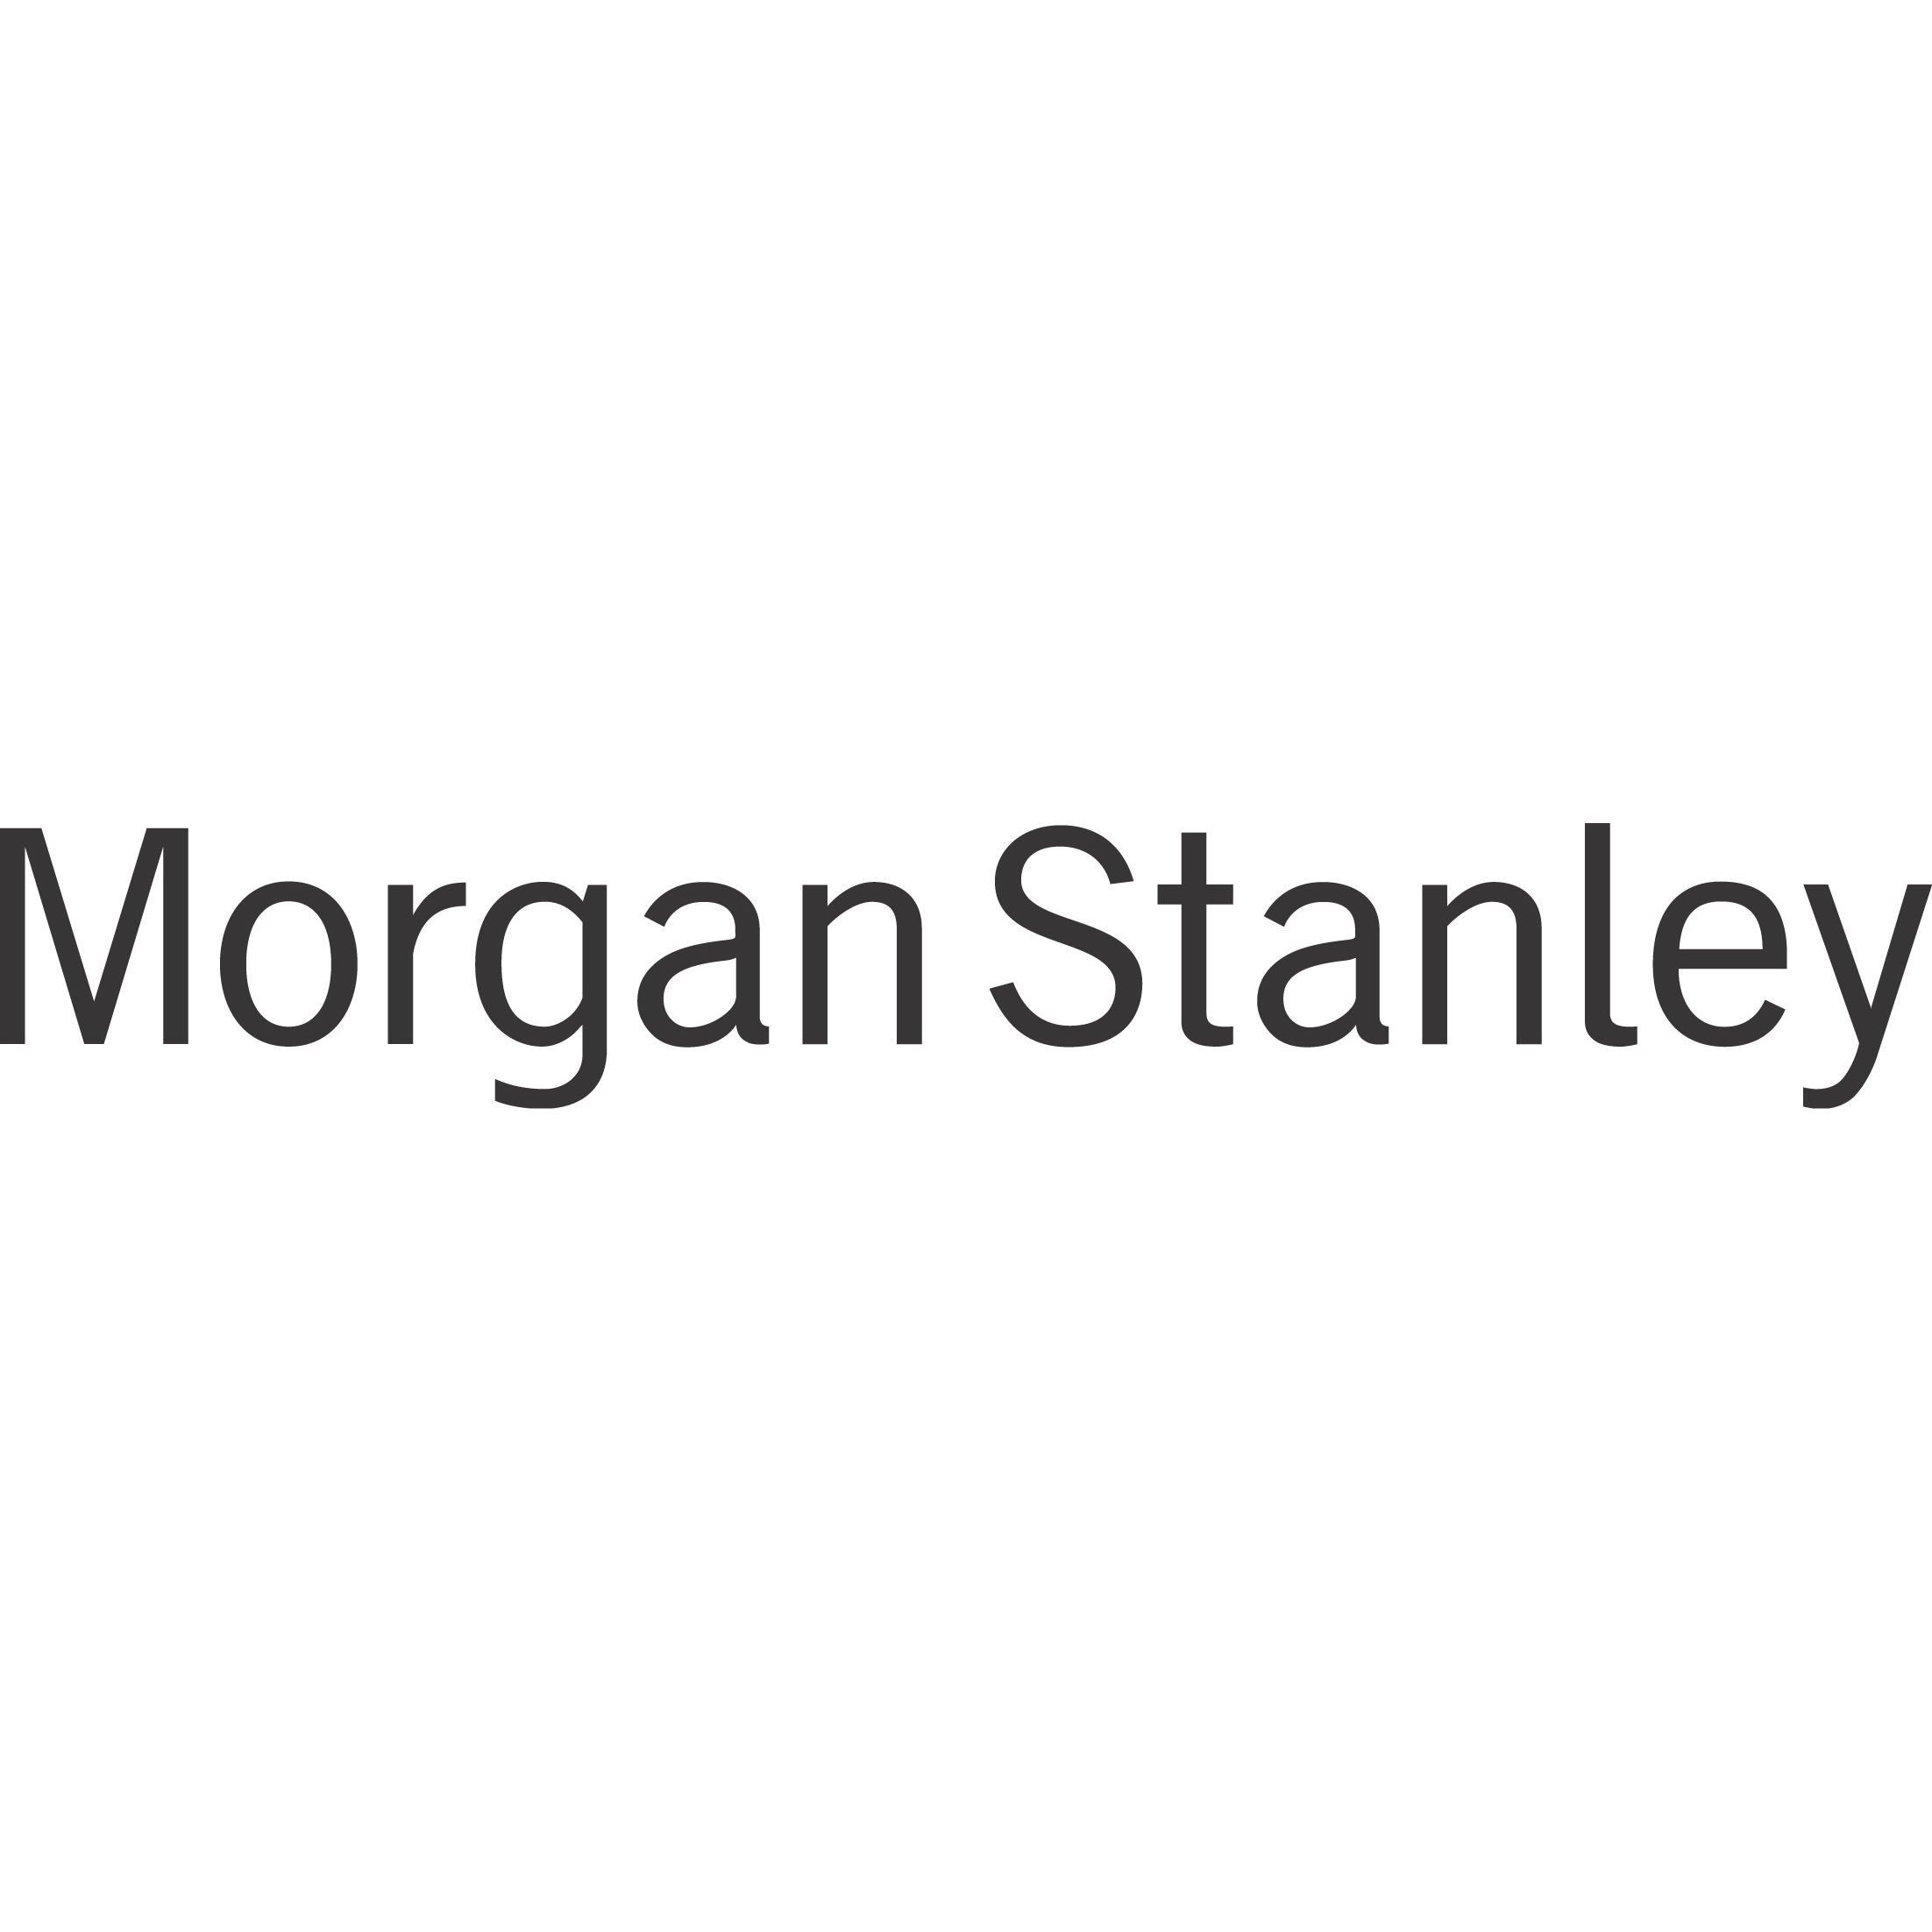 Philip Tynan - Morgan Stanley | Financial Advisor in Las Vegas,Nevada